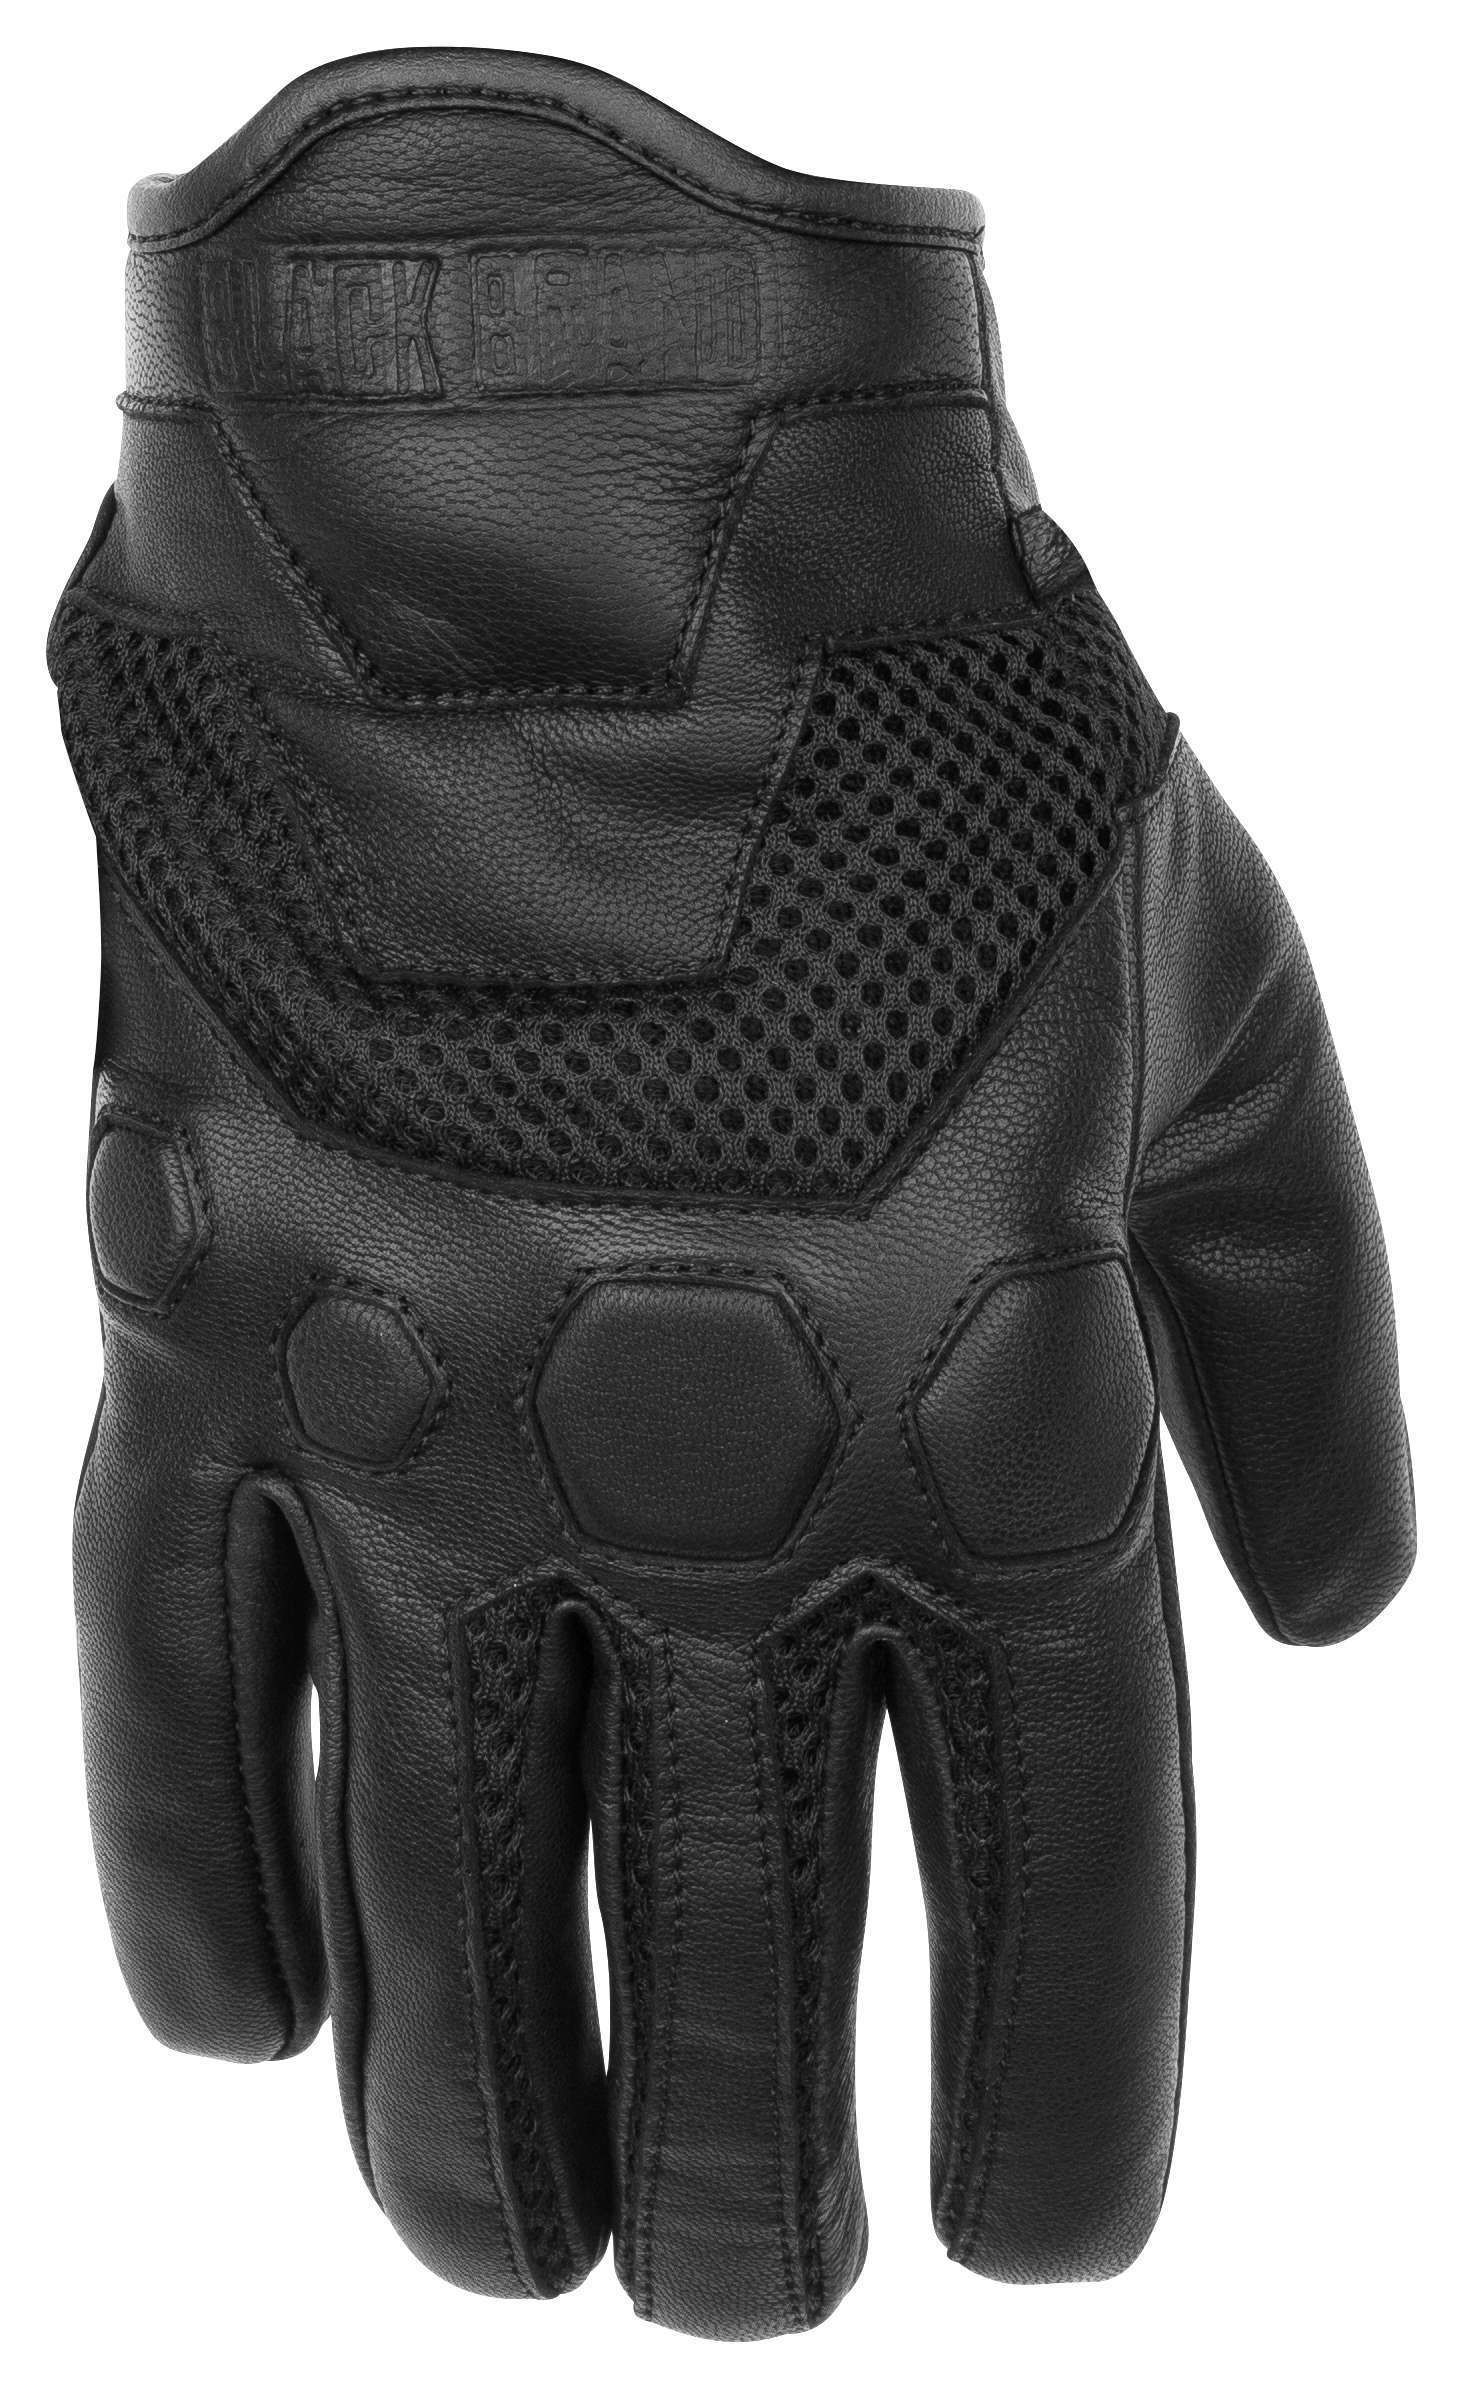 Motorcycle gloves mesh - Motorcycle Gloves Mesh 52